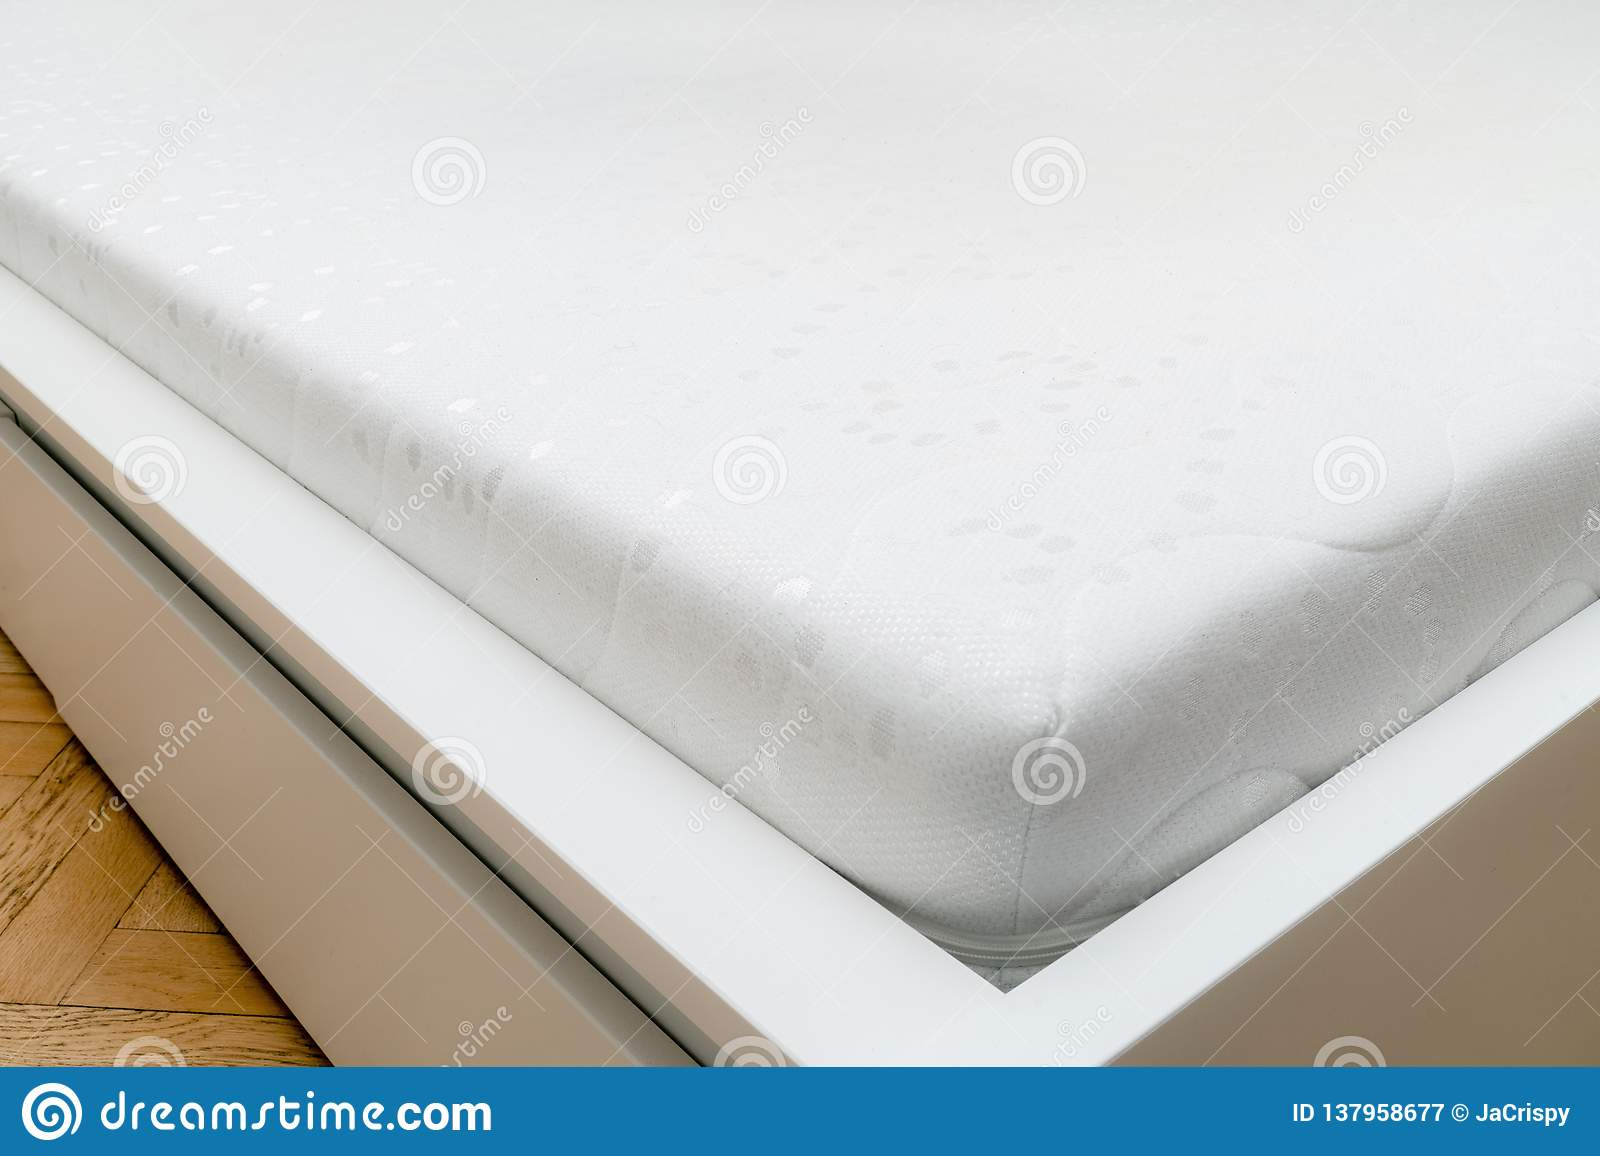 Close Up Of Memory Foam Mattress On The Bed Frame At Sleeping Room Comfort Choosing Mattress Stock Image Image Of Foam Close 137958677